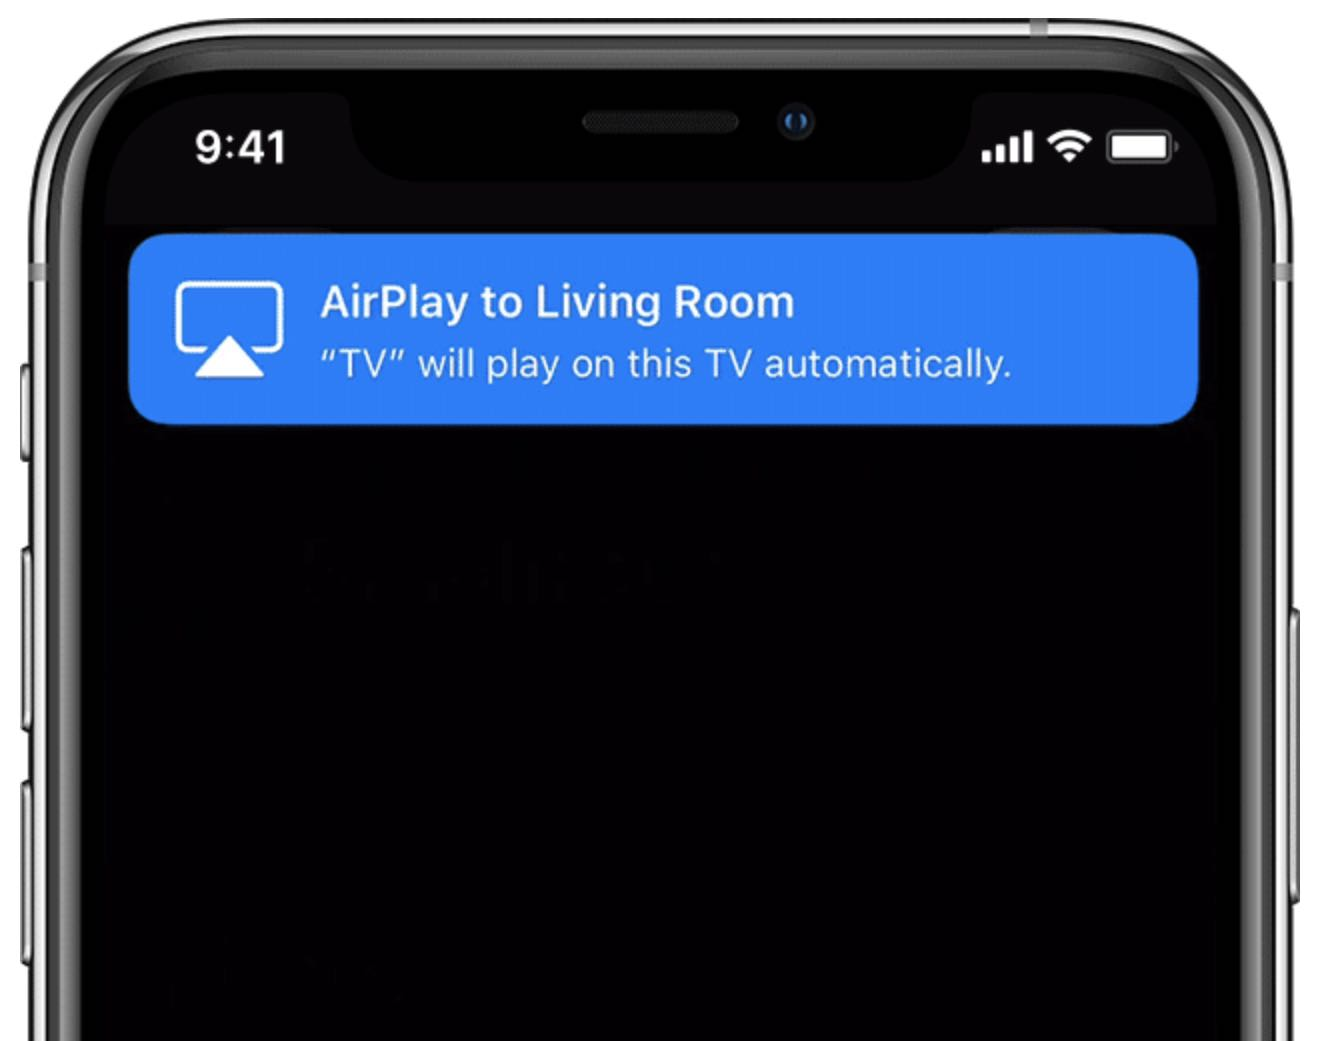 AirPlay TVs